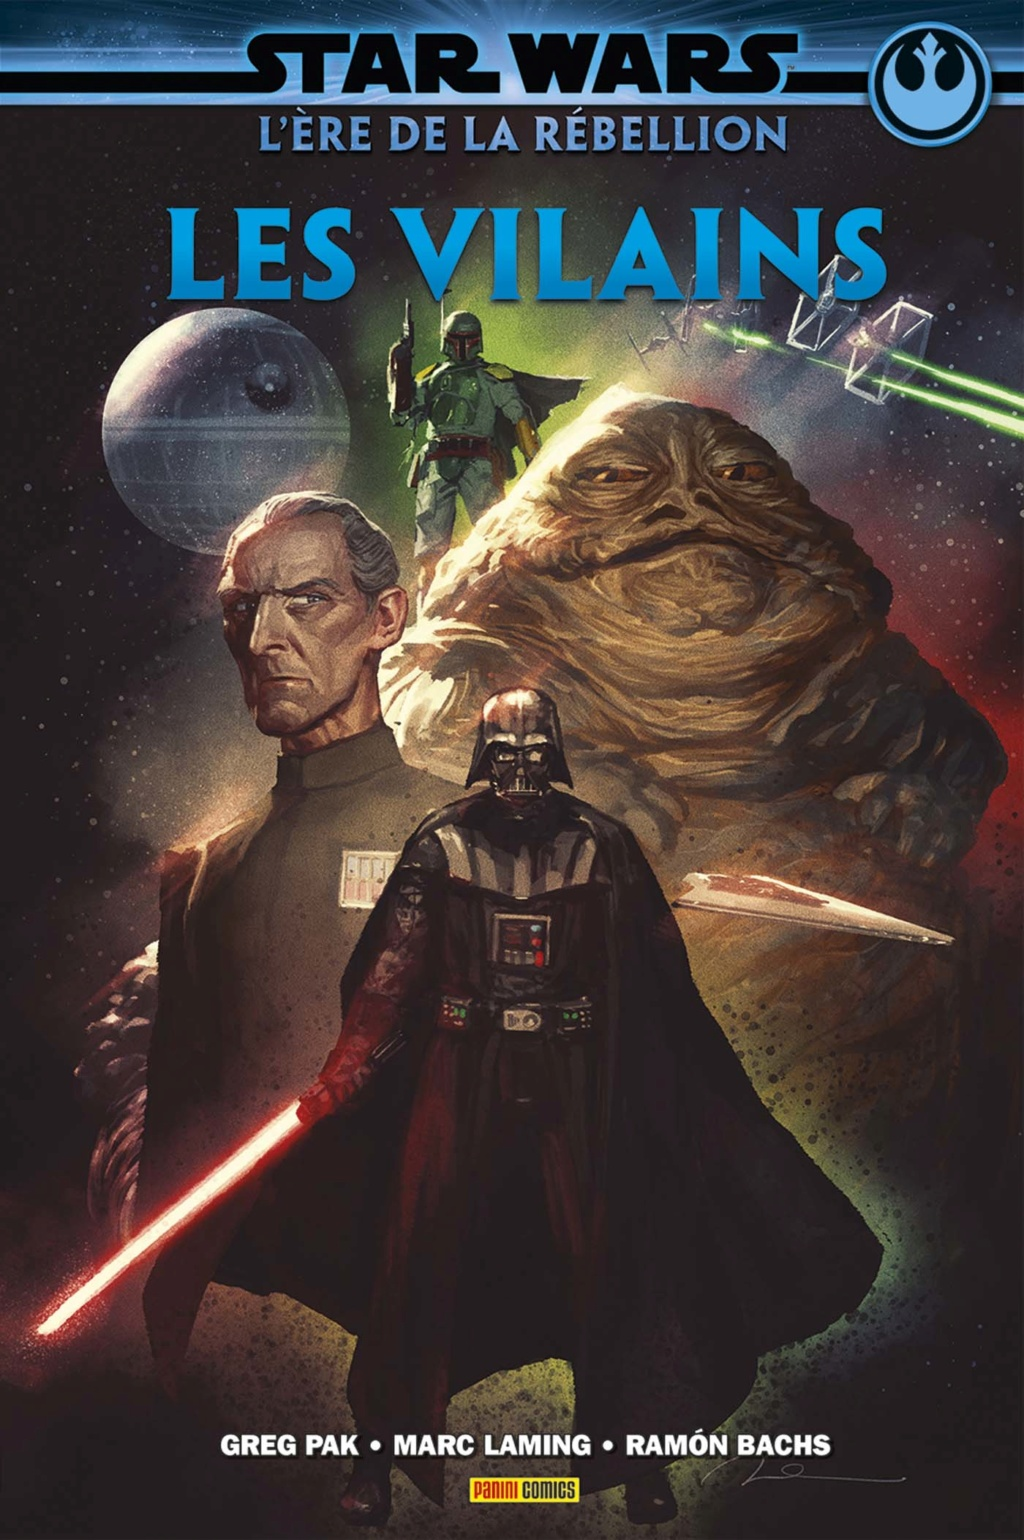 LE COIN STAR WARS (Avec spoilers ) - Page 33 Aorebv10